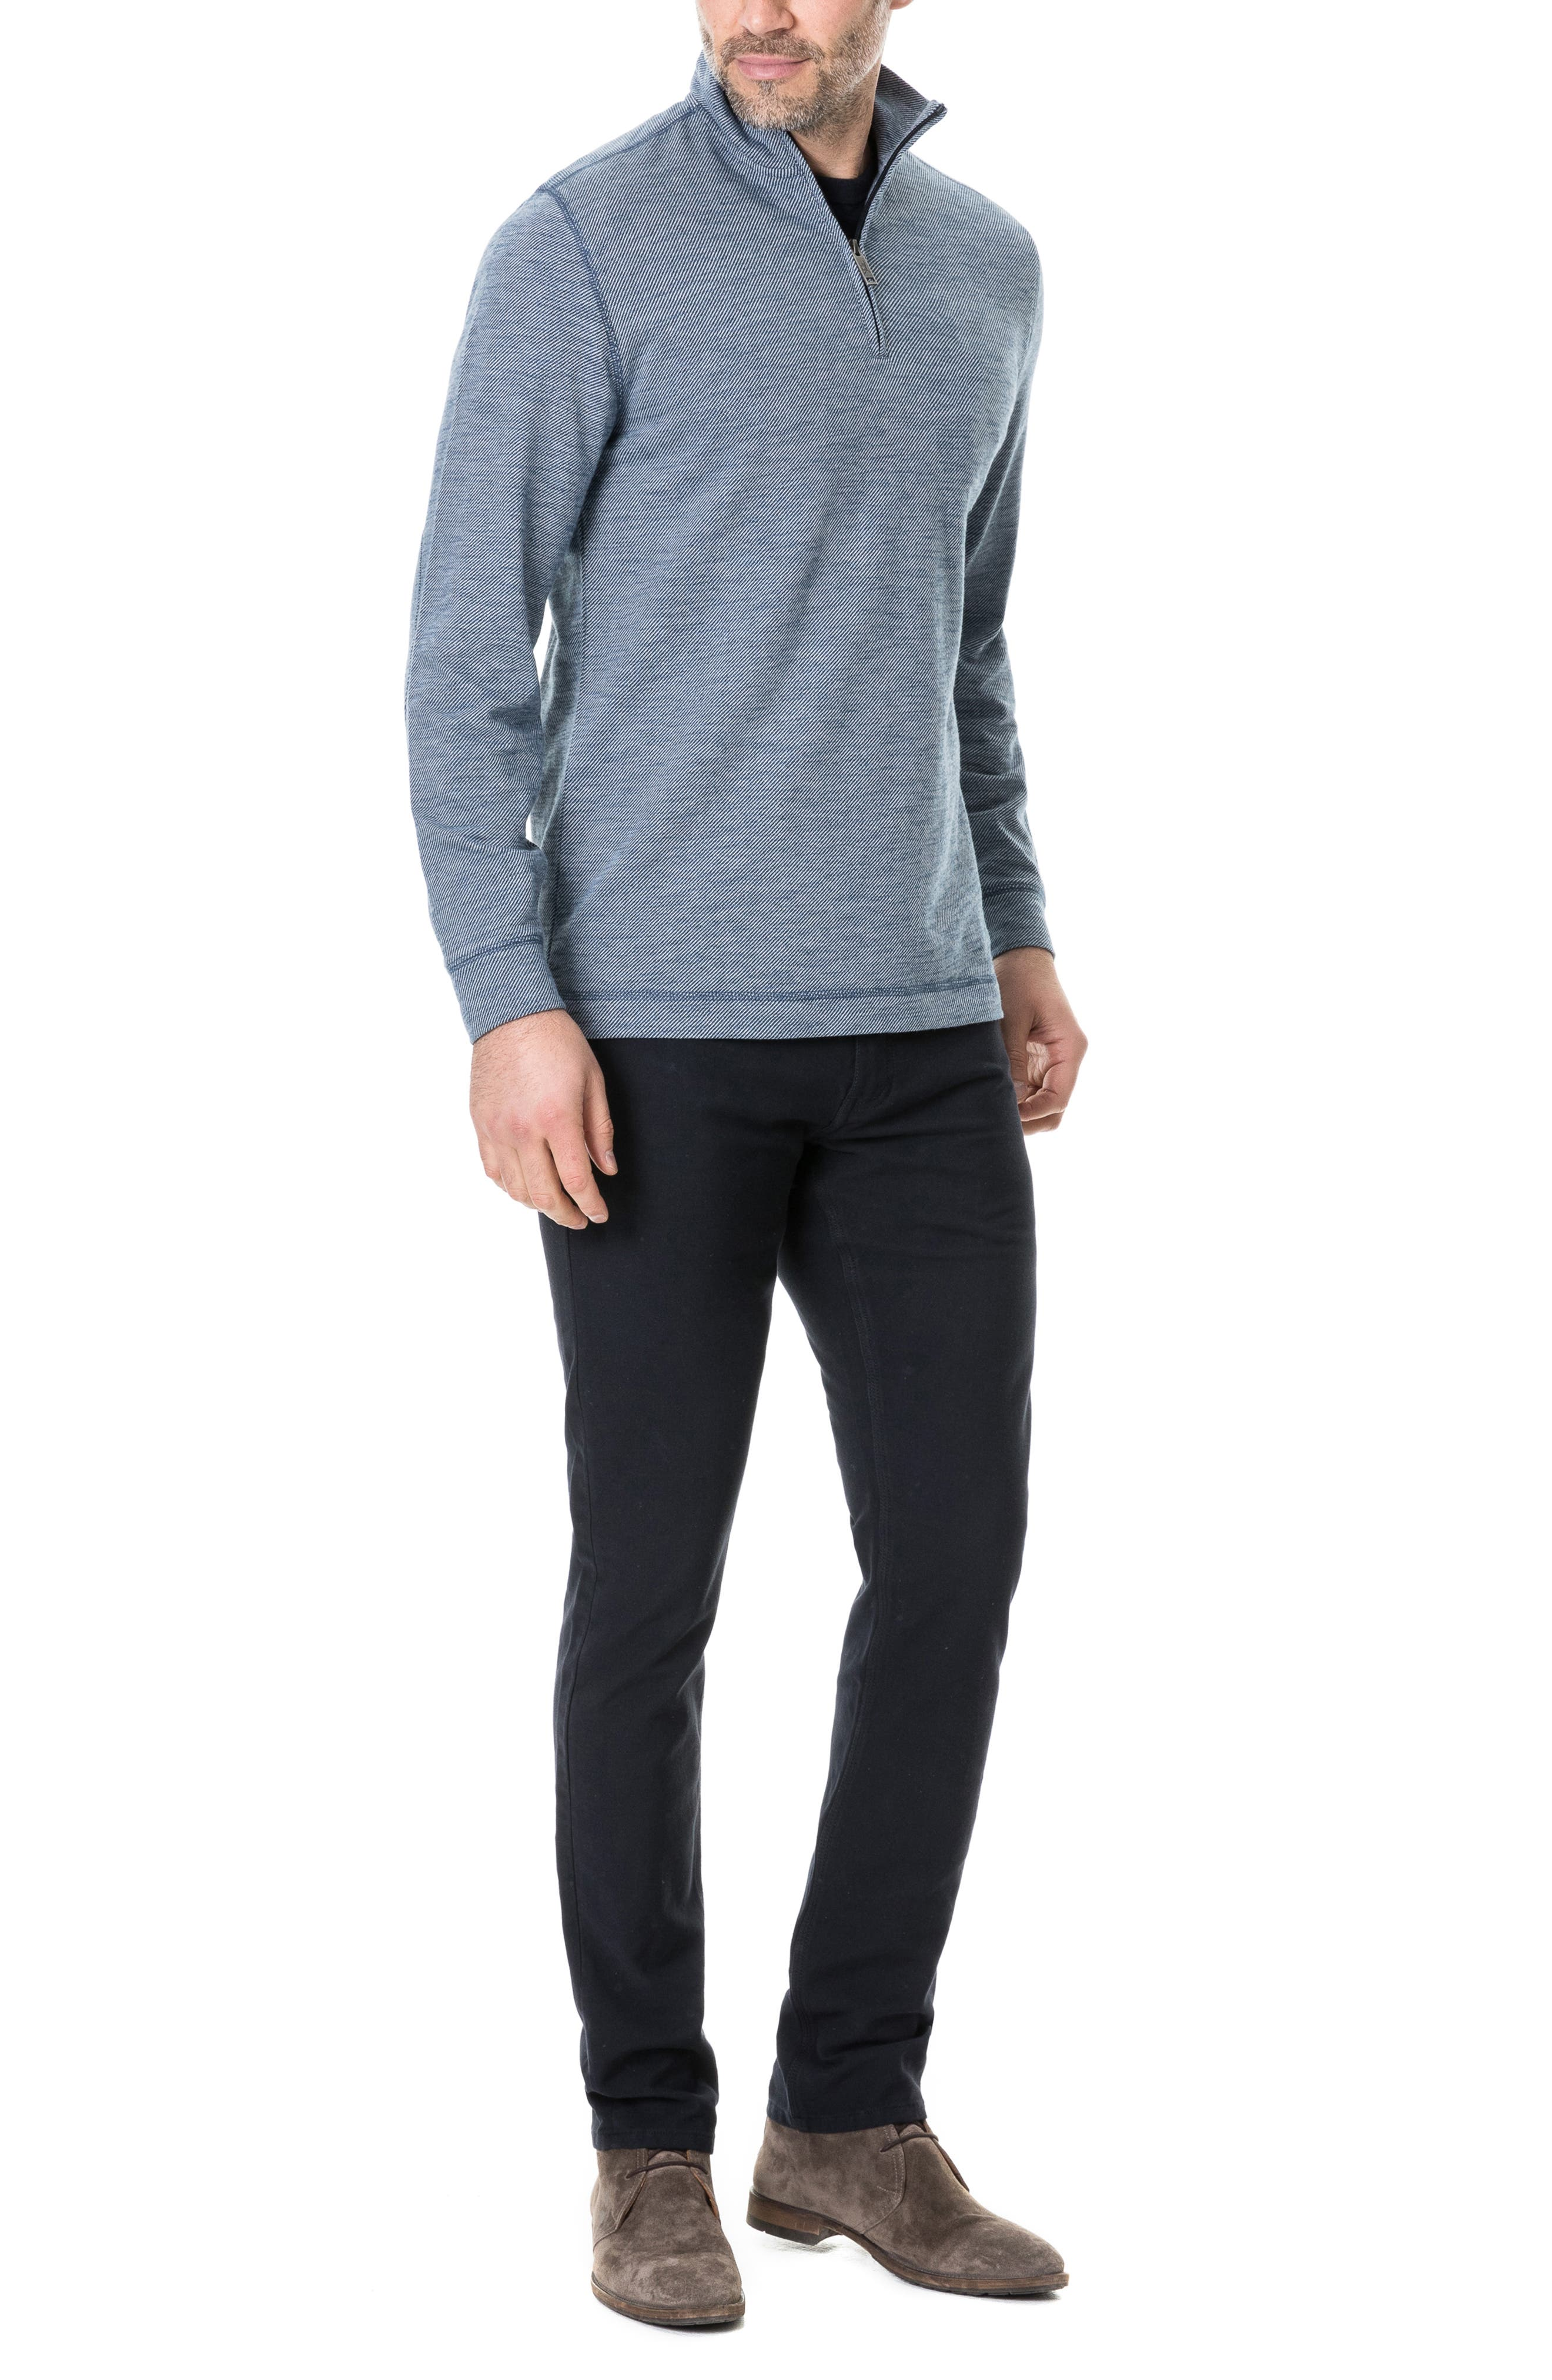 RODD & GUNN, Anvil Island Regular Fit Pullover, Alternate thumbnail 5, color, DENIM BLUE